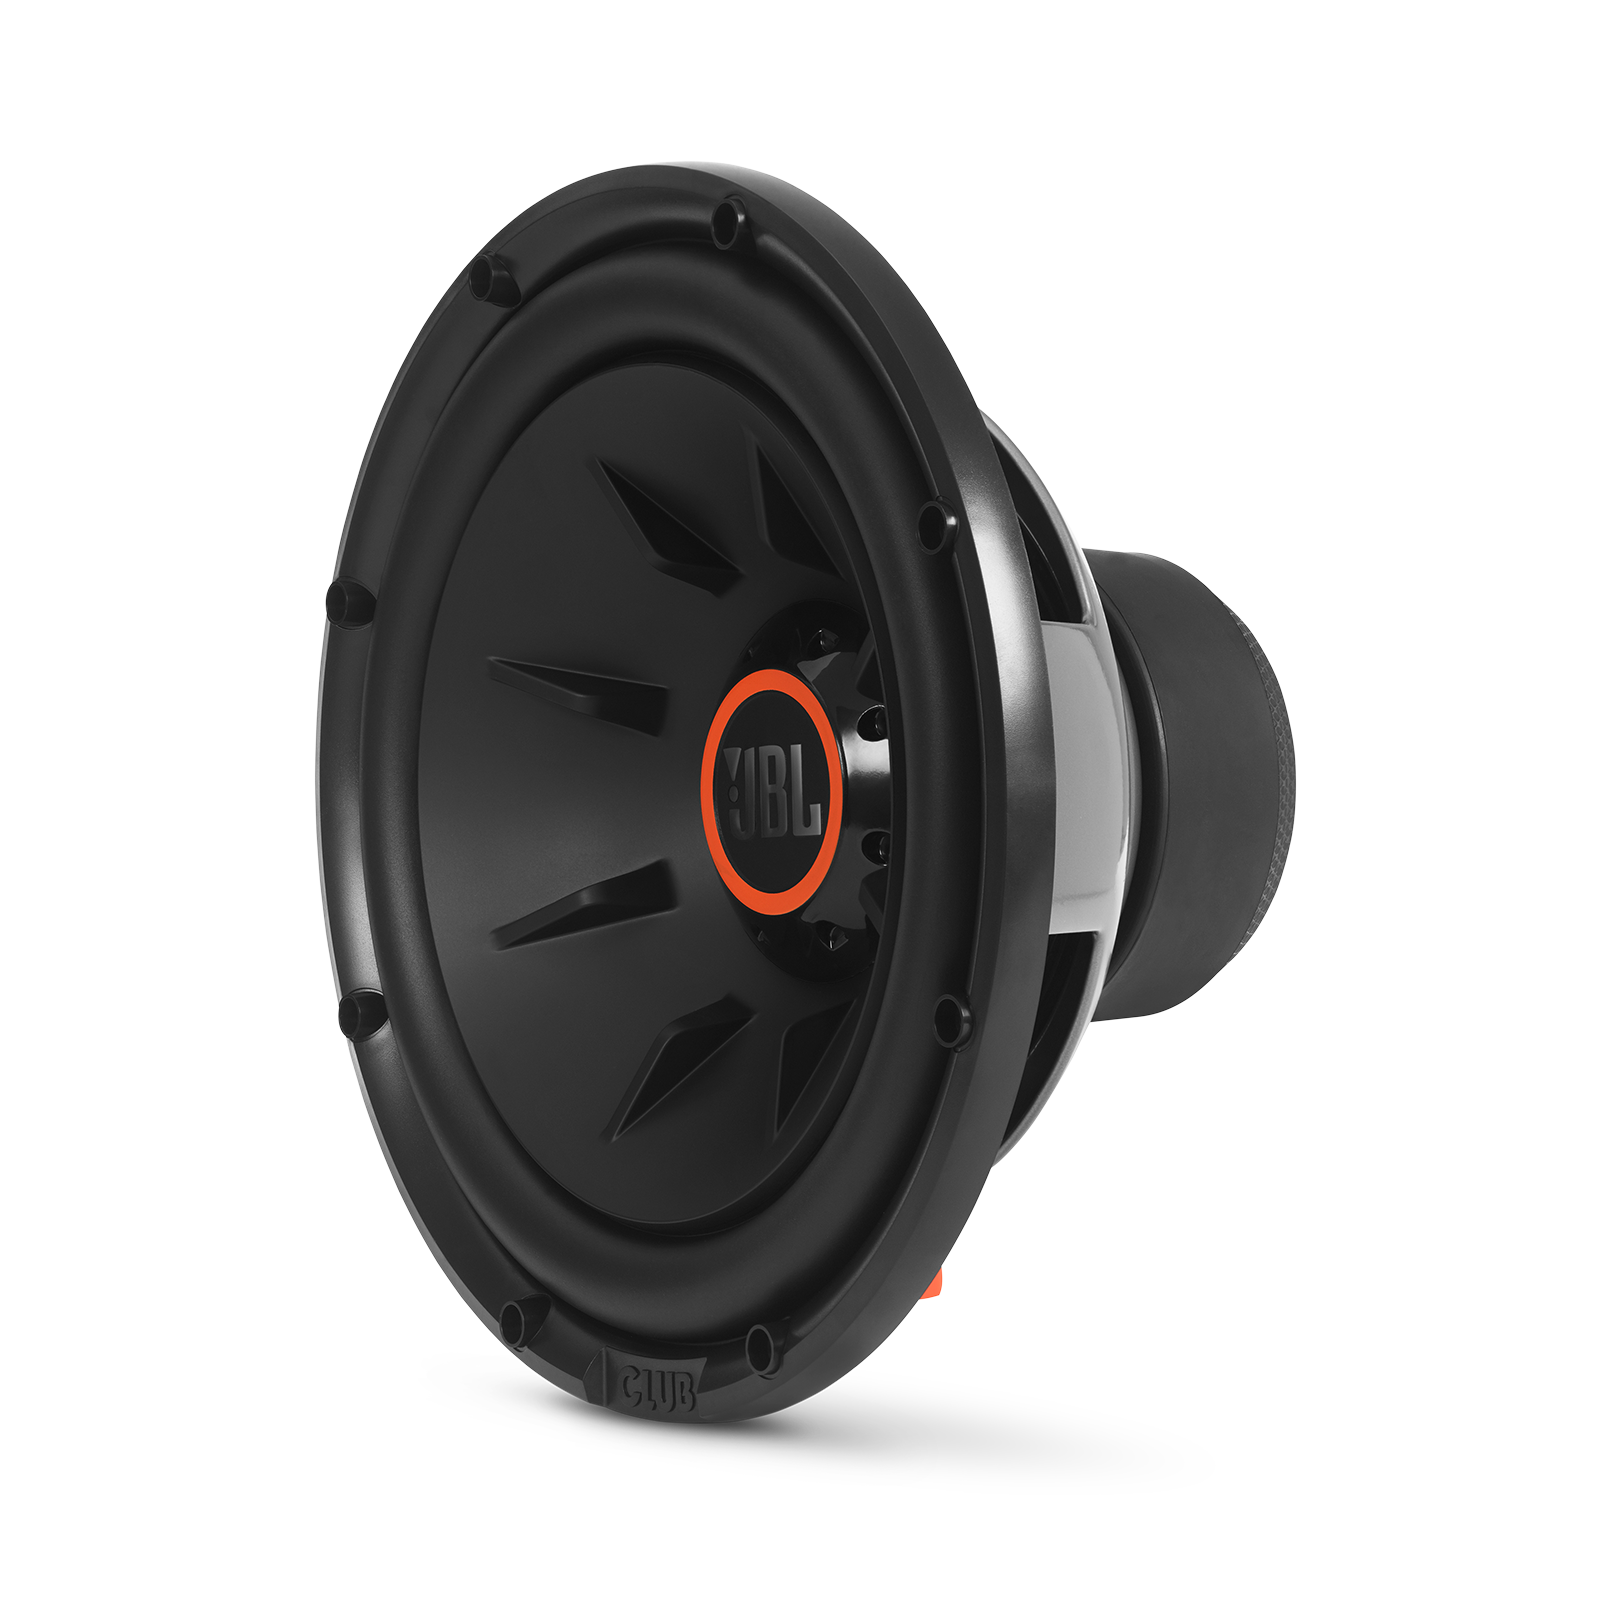 "Club 1224 - Black - 10"" (250mm) and 12"" (300mm) car audio subwoofers - Hero"